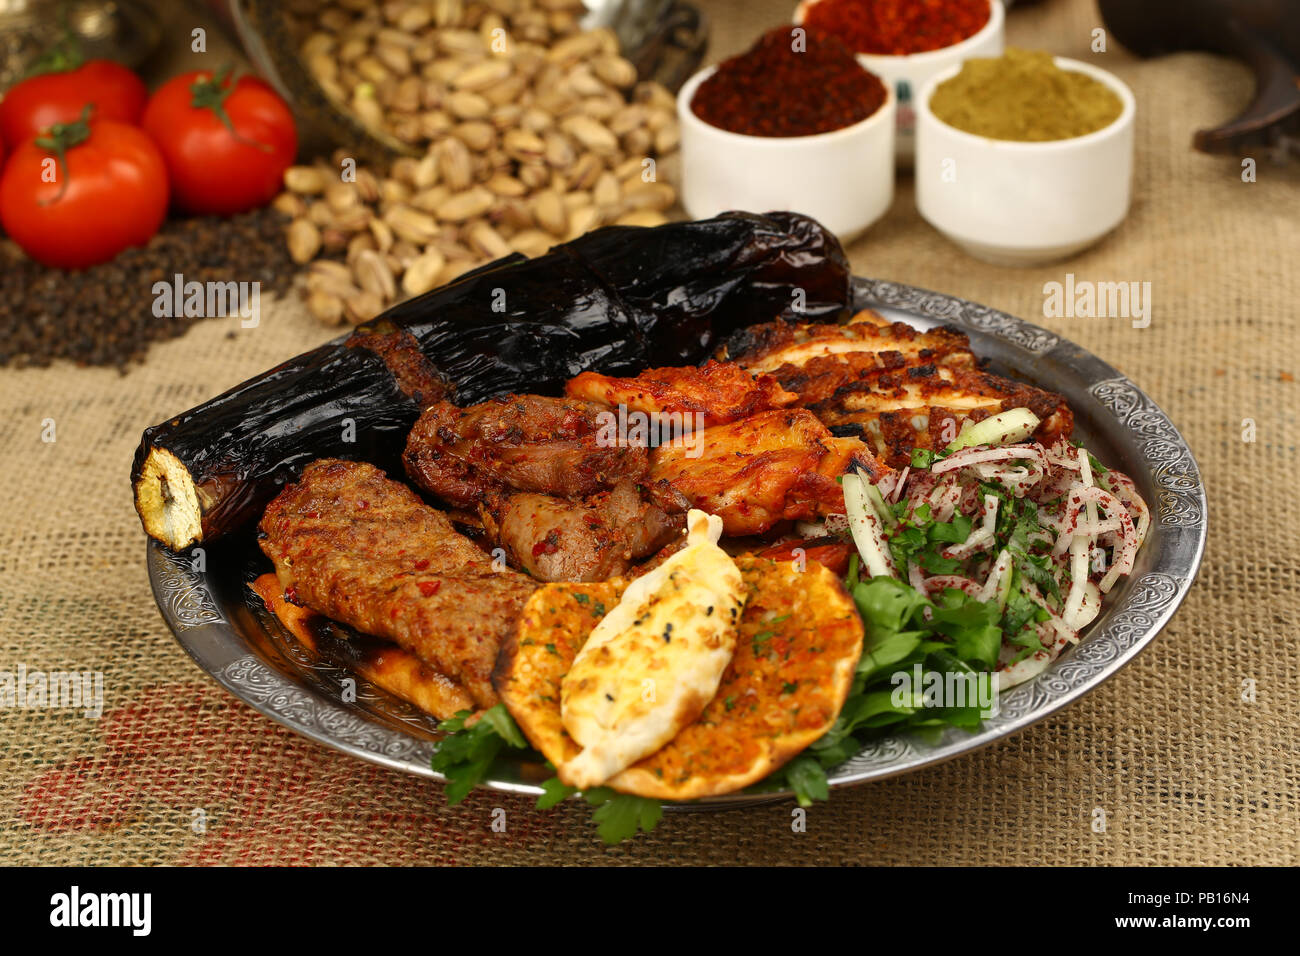 Mixed Kebab Plate Turkish Lahmacun Adana Shish Kebab Chicken Meat Meatball Stock Photo Alamy